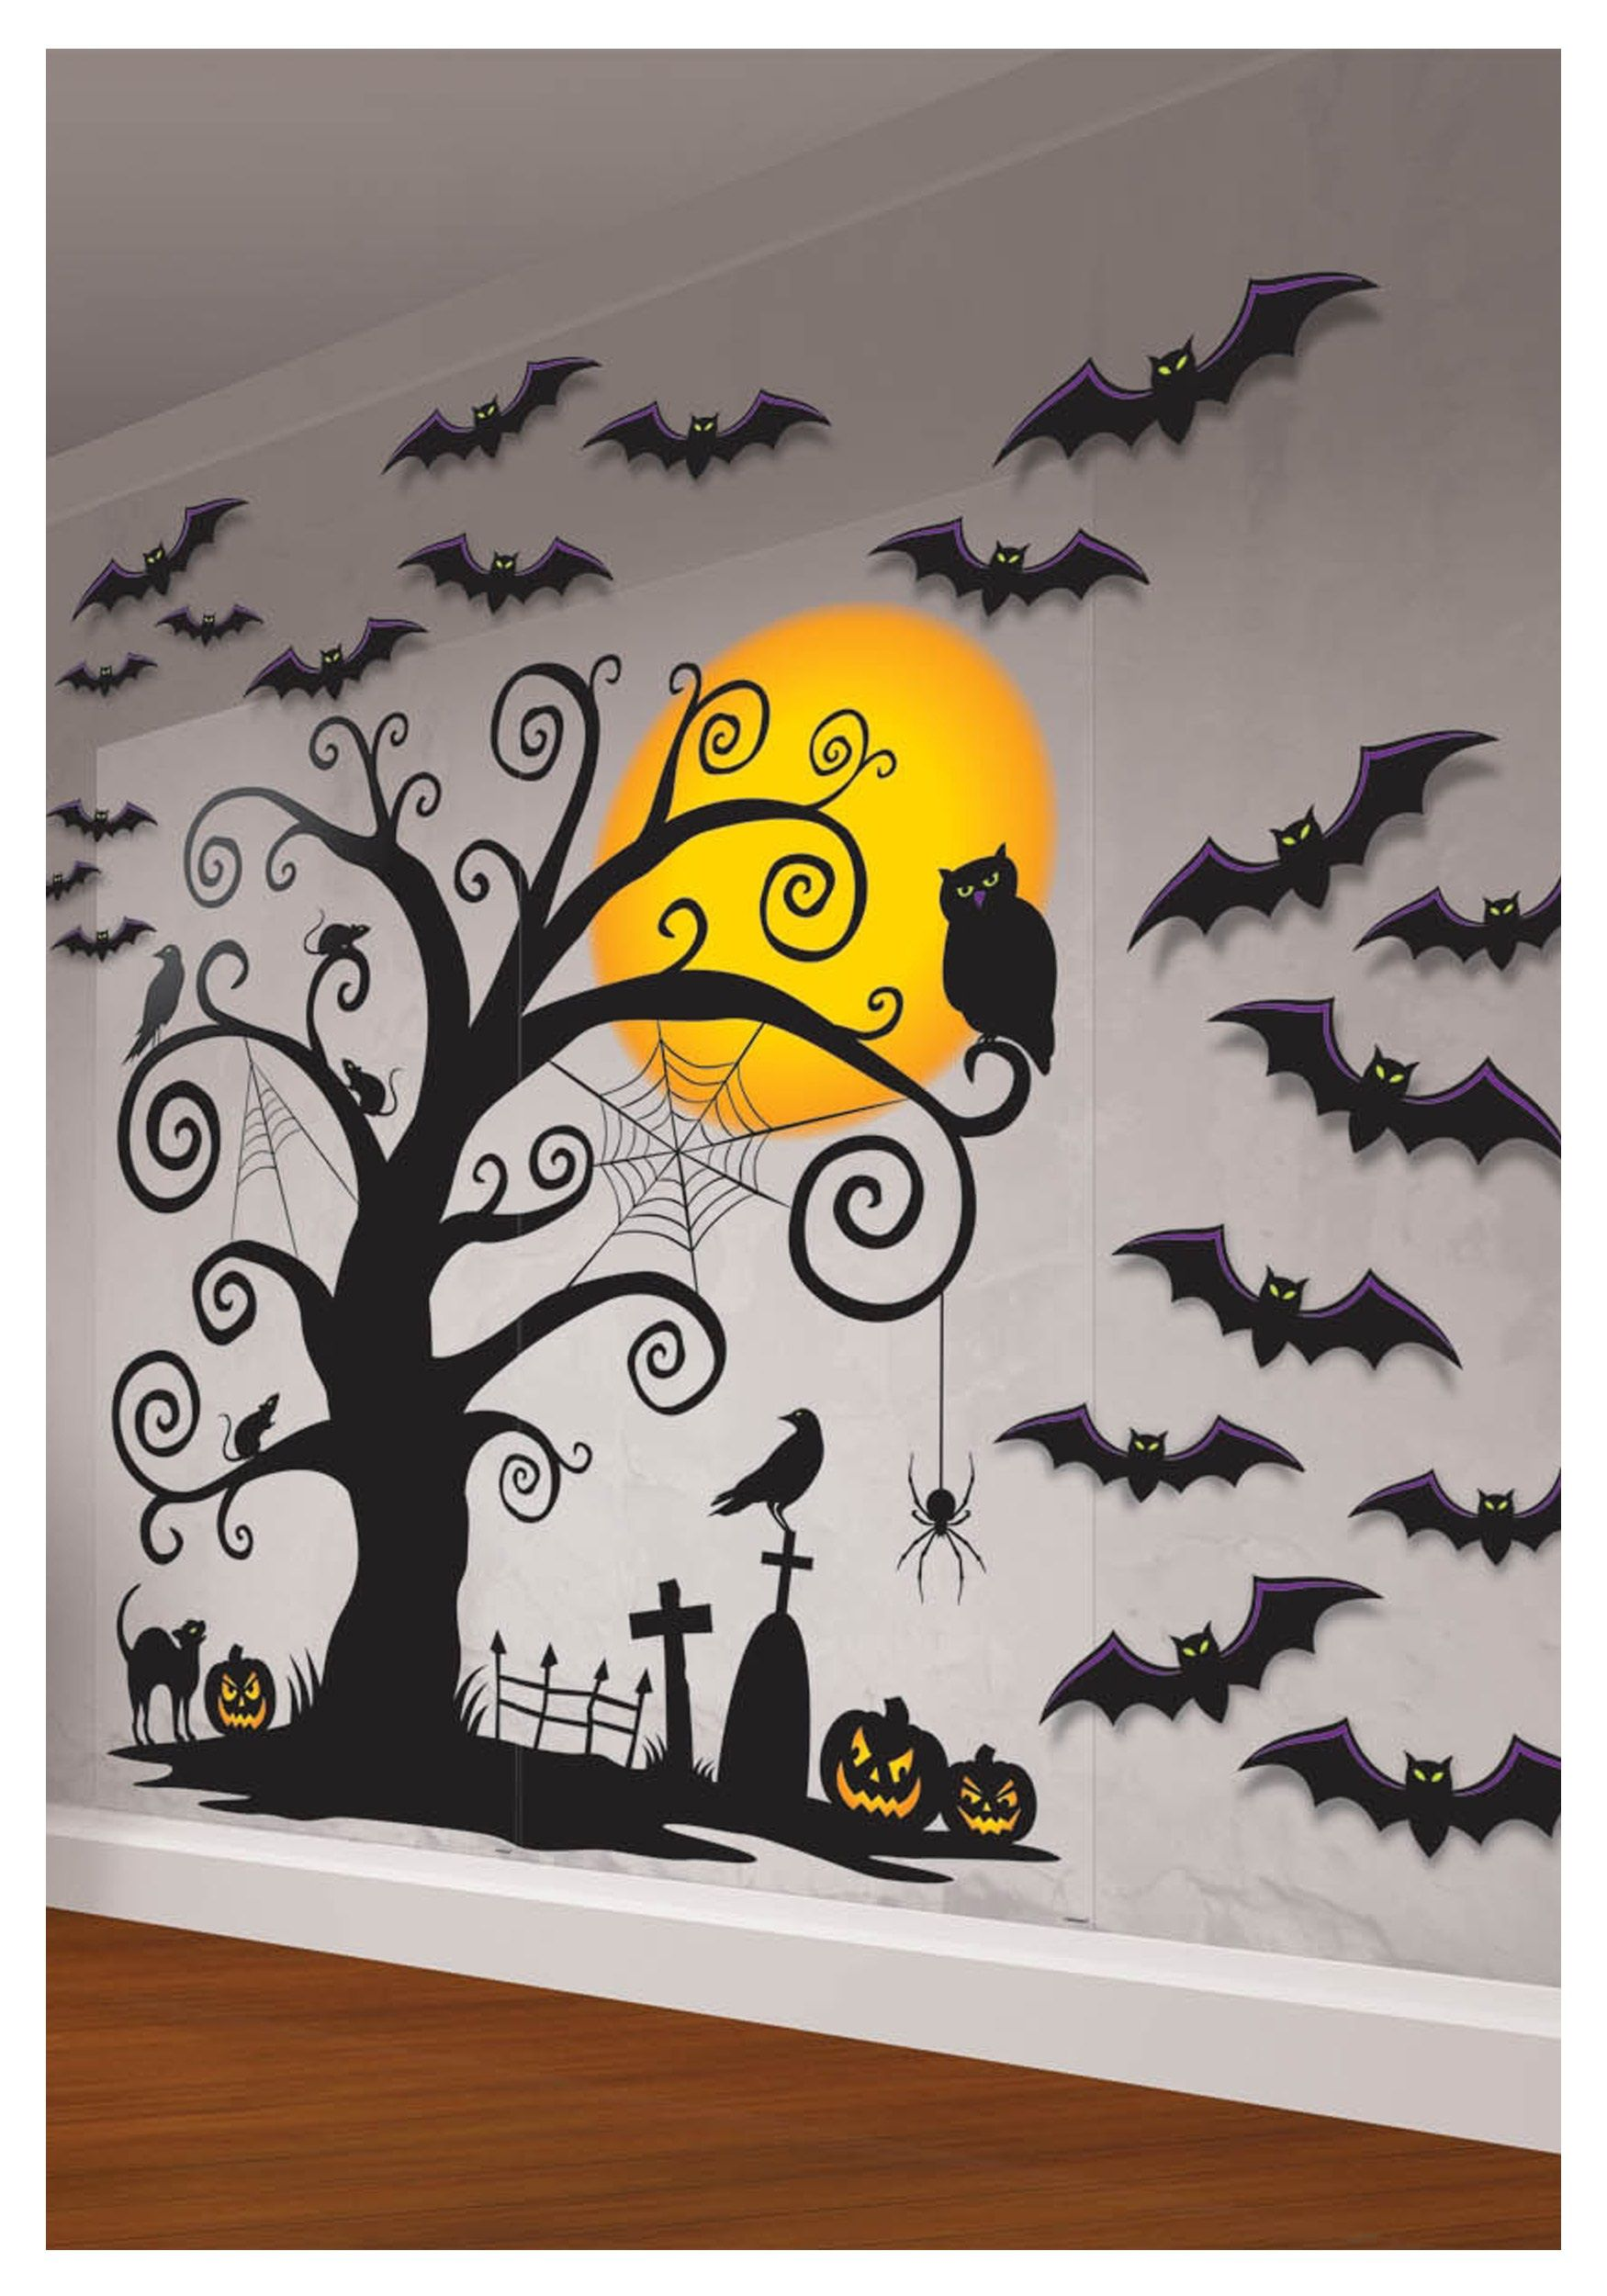 decor to deco handmade wide birthday halloween despite outside indoor decorations creative decorationshandmade for the party make home